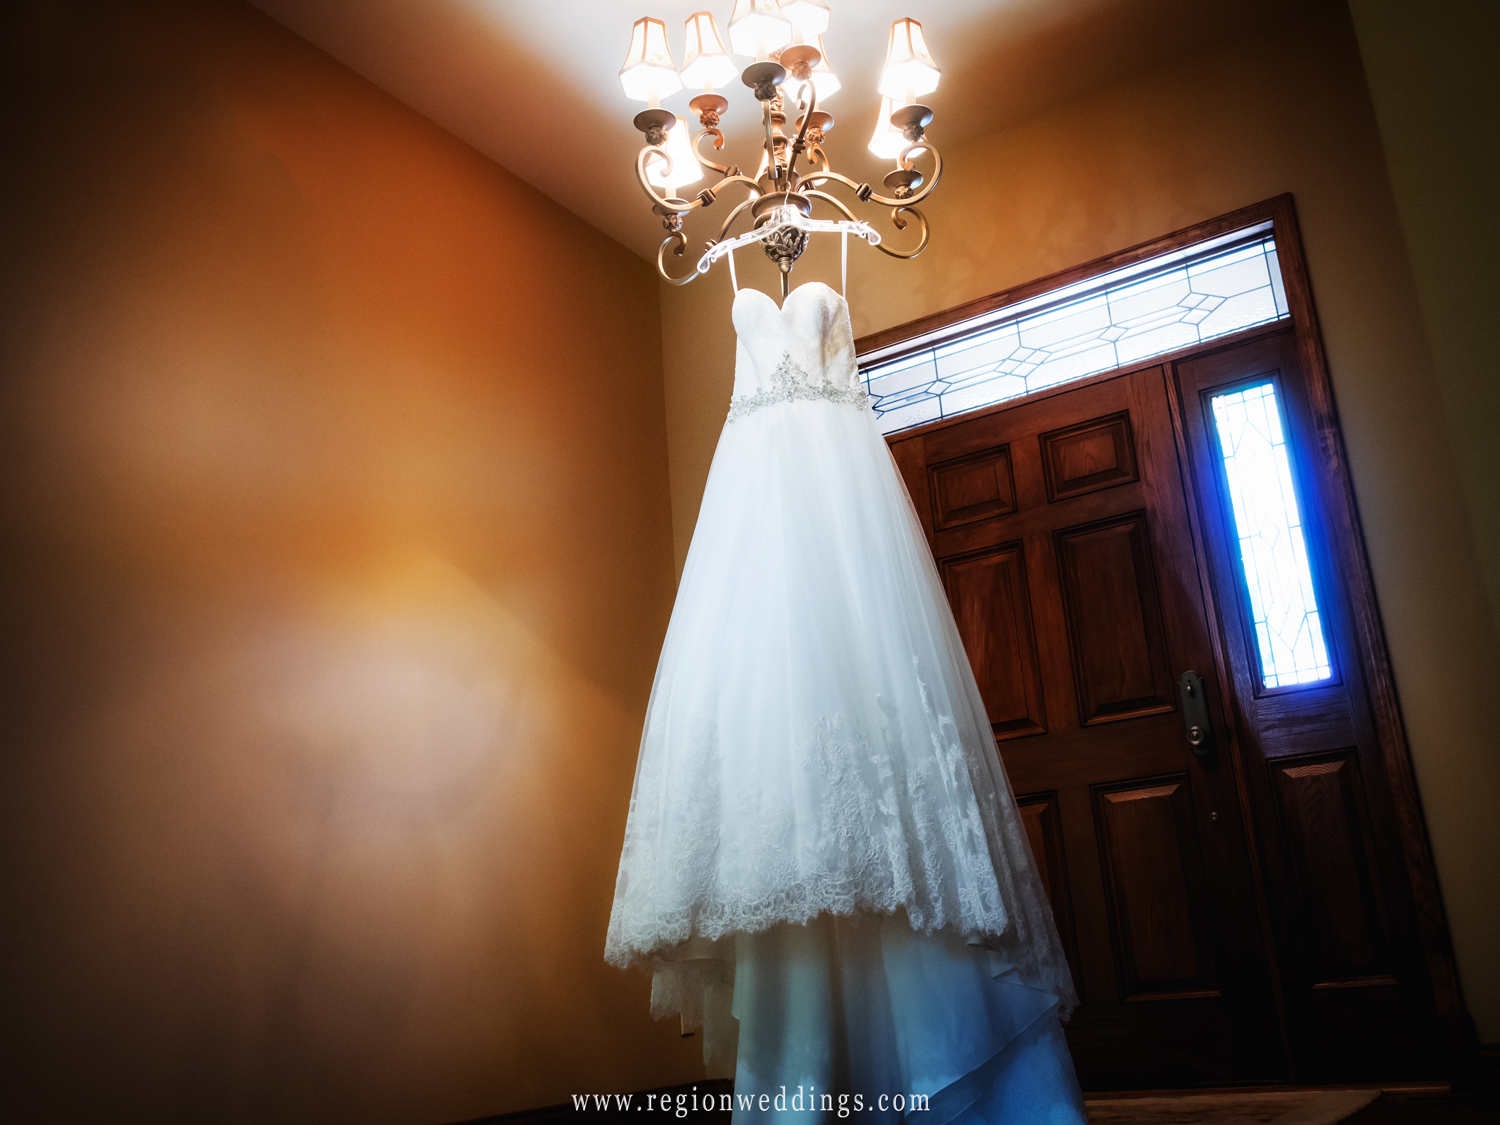 A beautiful wedding dress hangs from a chandelier at Sandy Pines Condo.